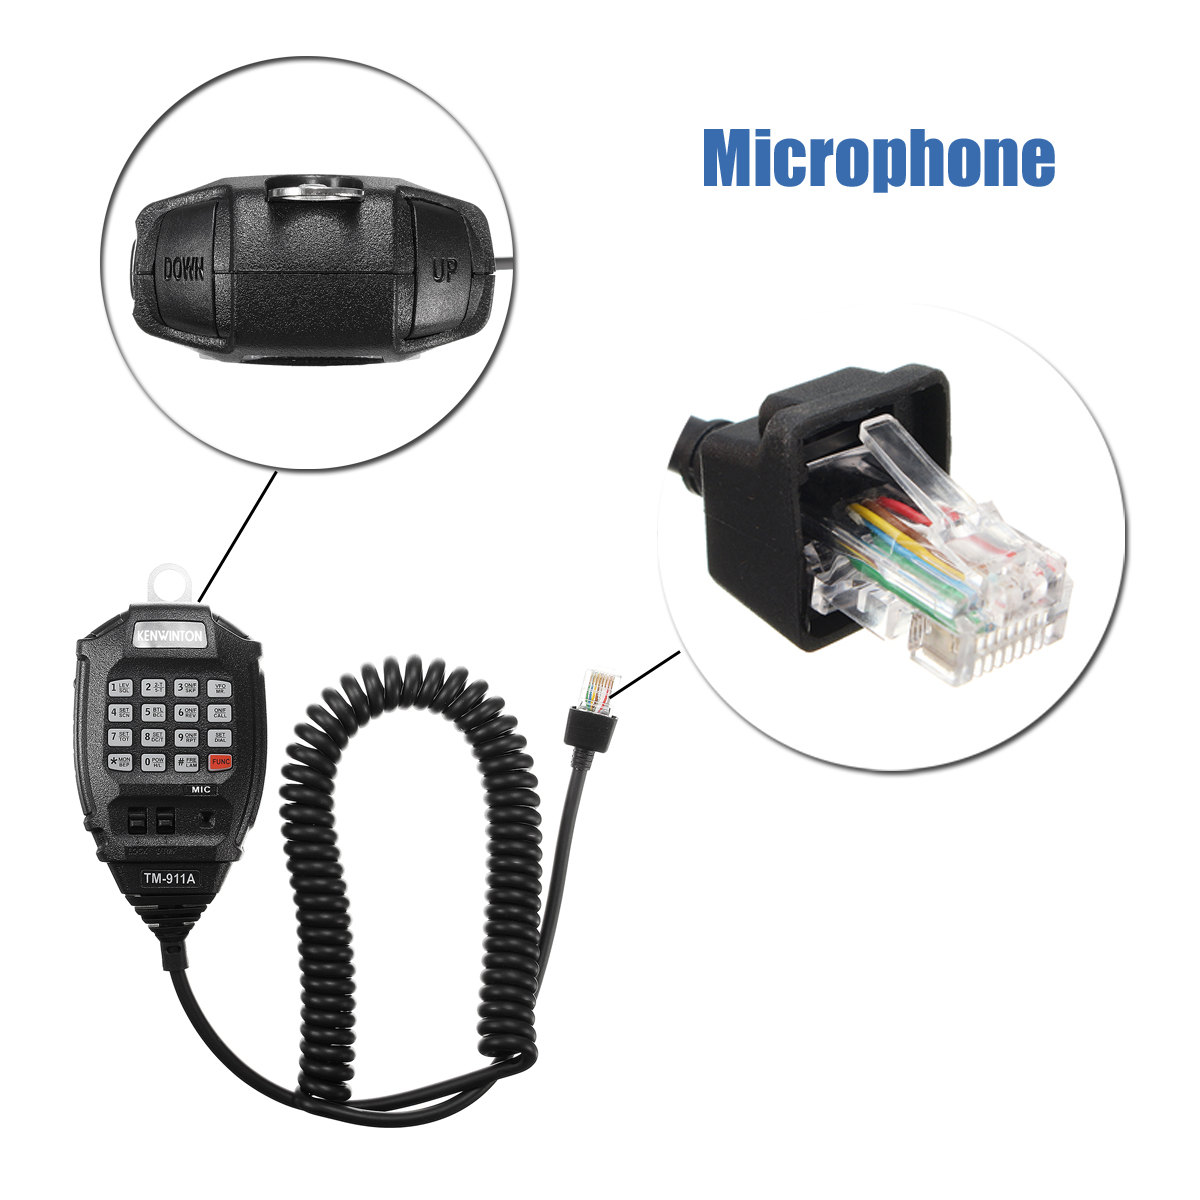 75W12V 150km VHF Mobile Car Marine Radio Walkie Talkie Transceiver with Microphone